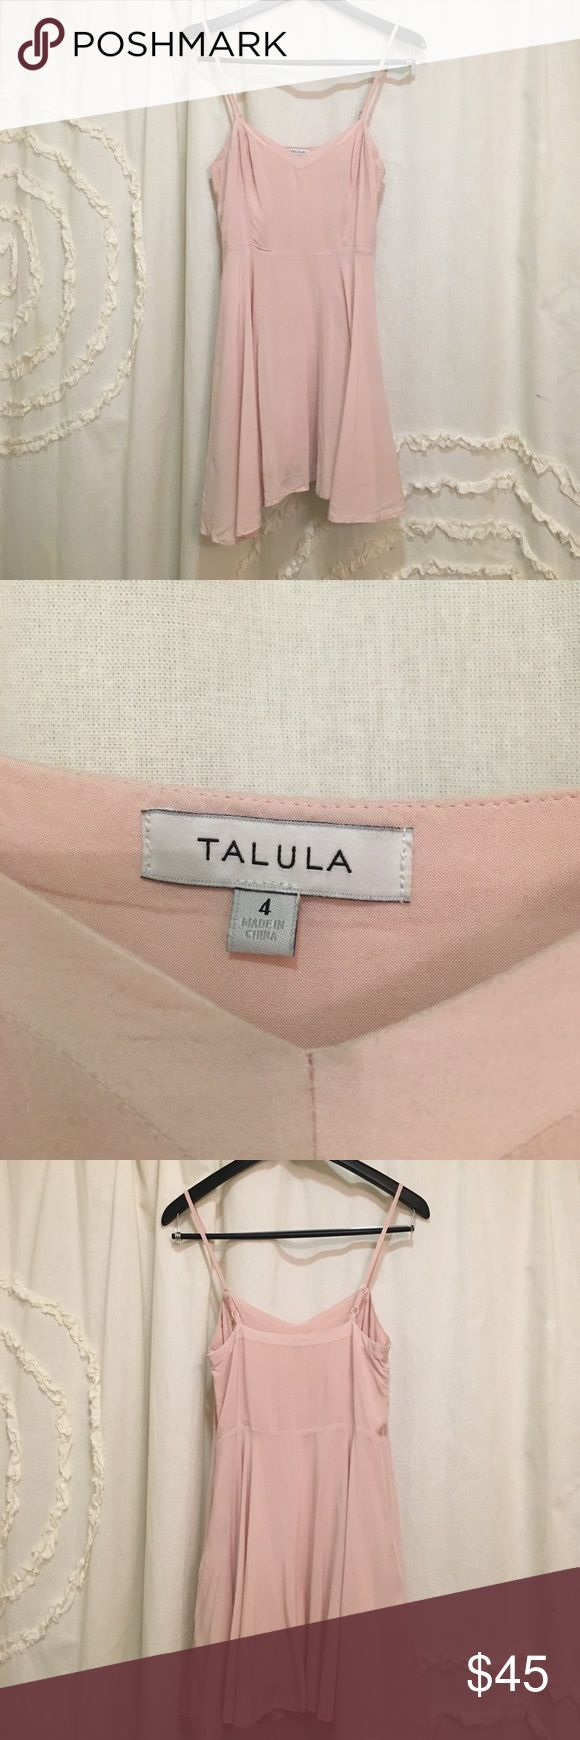 Talulah x Aritzia Blush Colored Dress Perfect for spring and summer! This Blush colored beauty has only been worn a handful of times. It is super soft and incredibly flattering! The bottom is very flowy and girly!  💕 Aritzia Dresses Mini